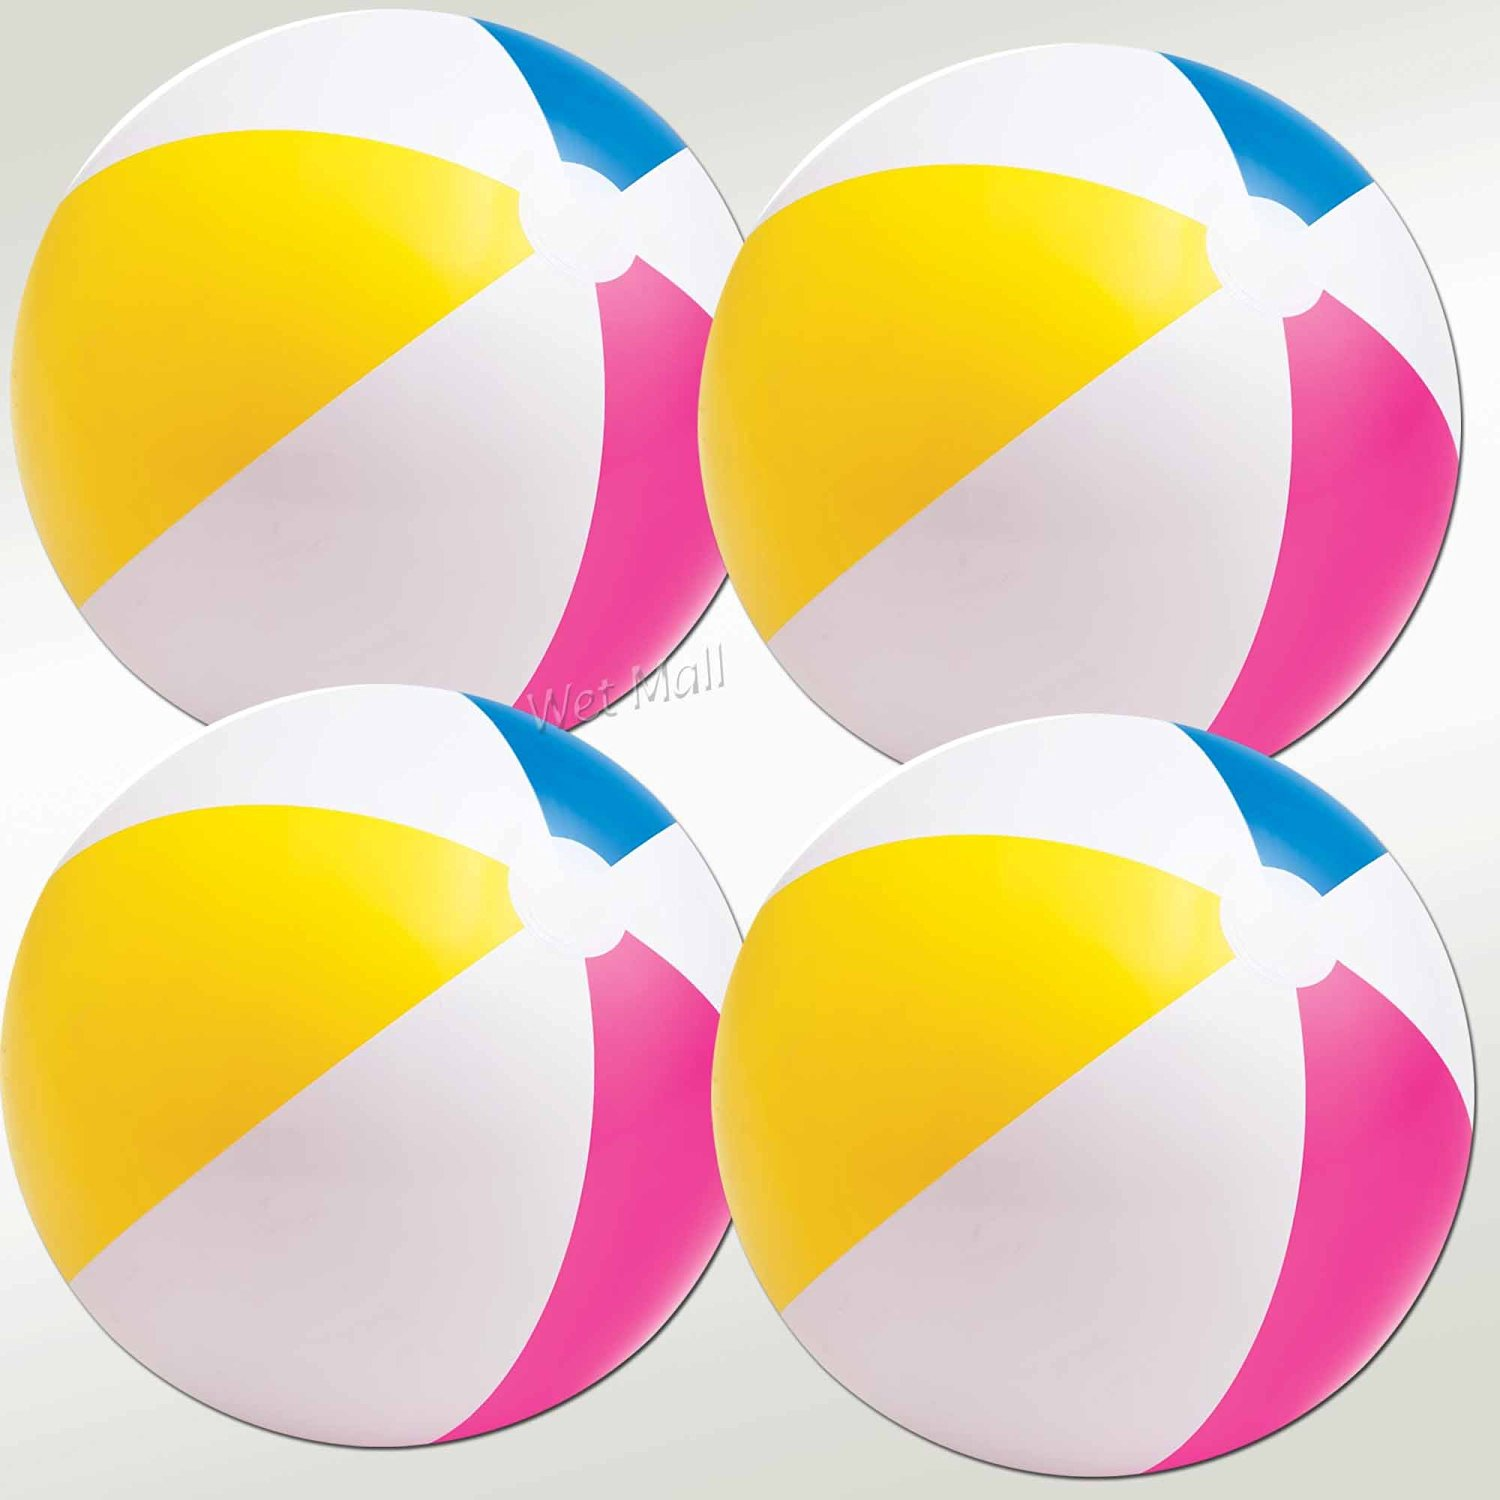 INTEX Classic Inflatable Glossy Panel Colorful Beach Ball (Set of 4)